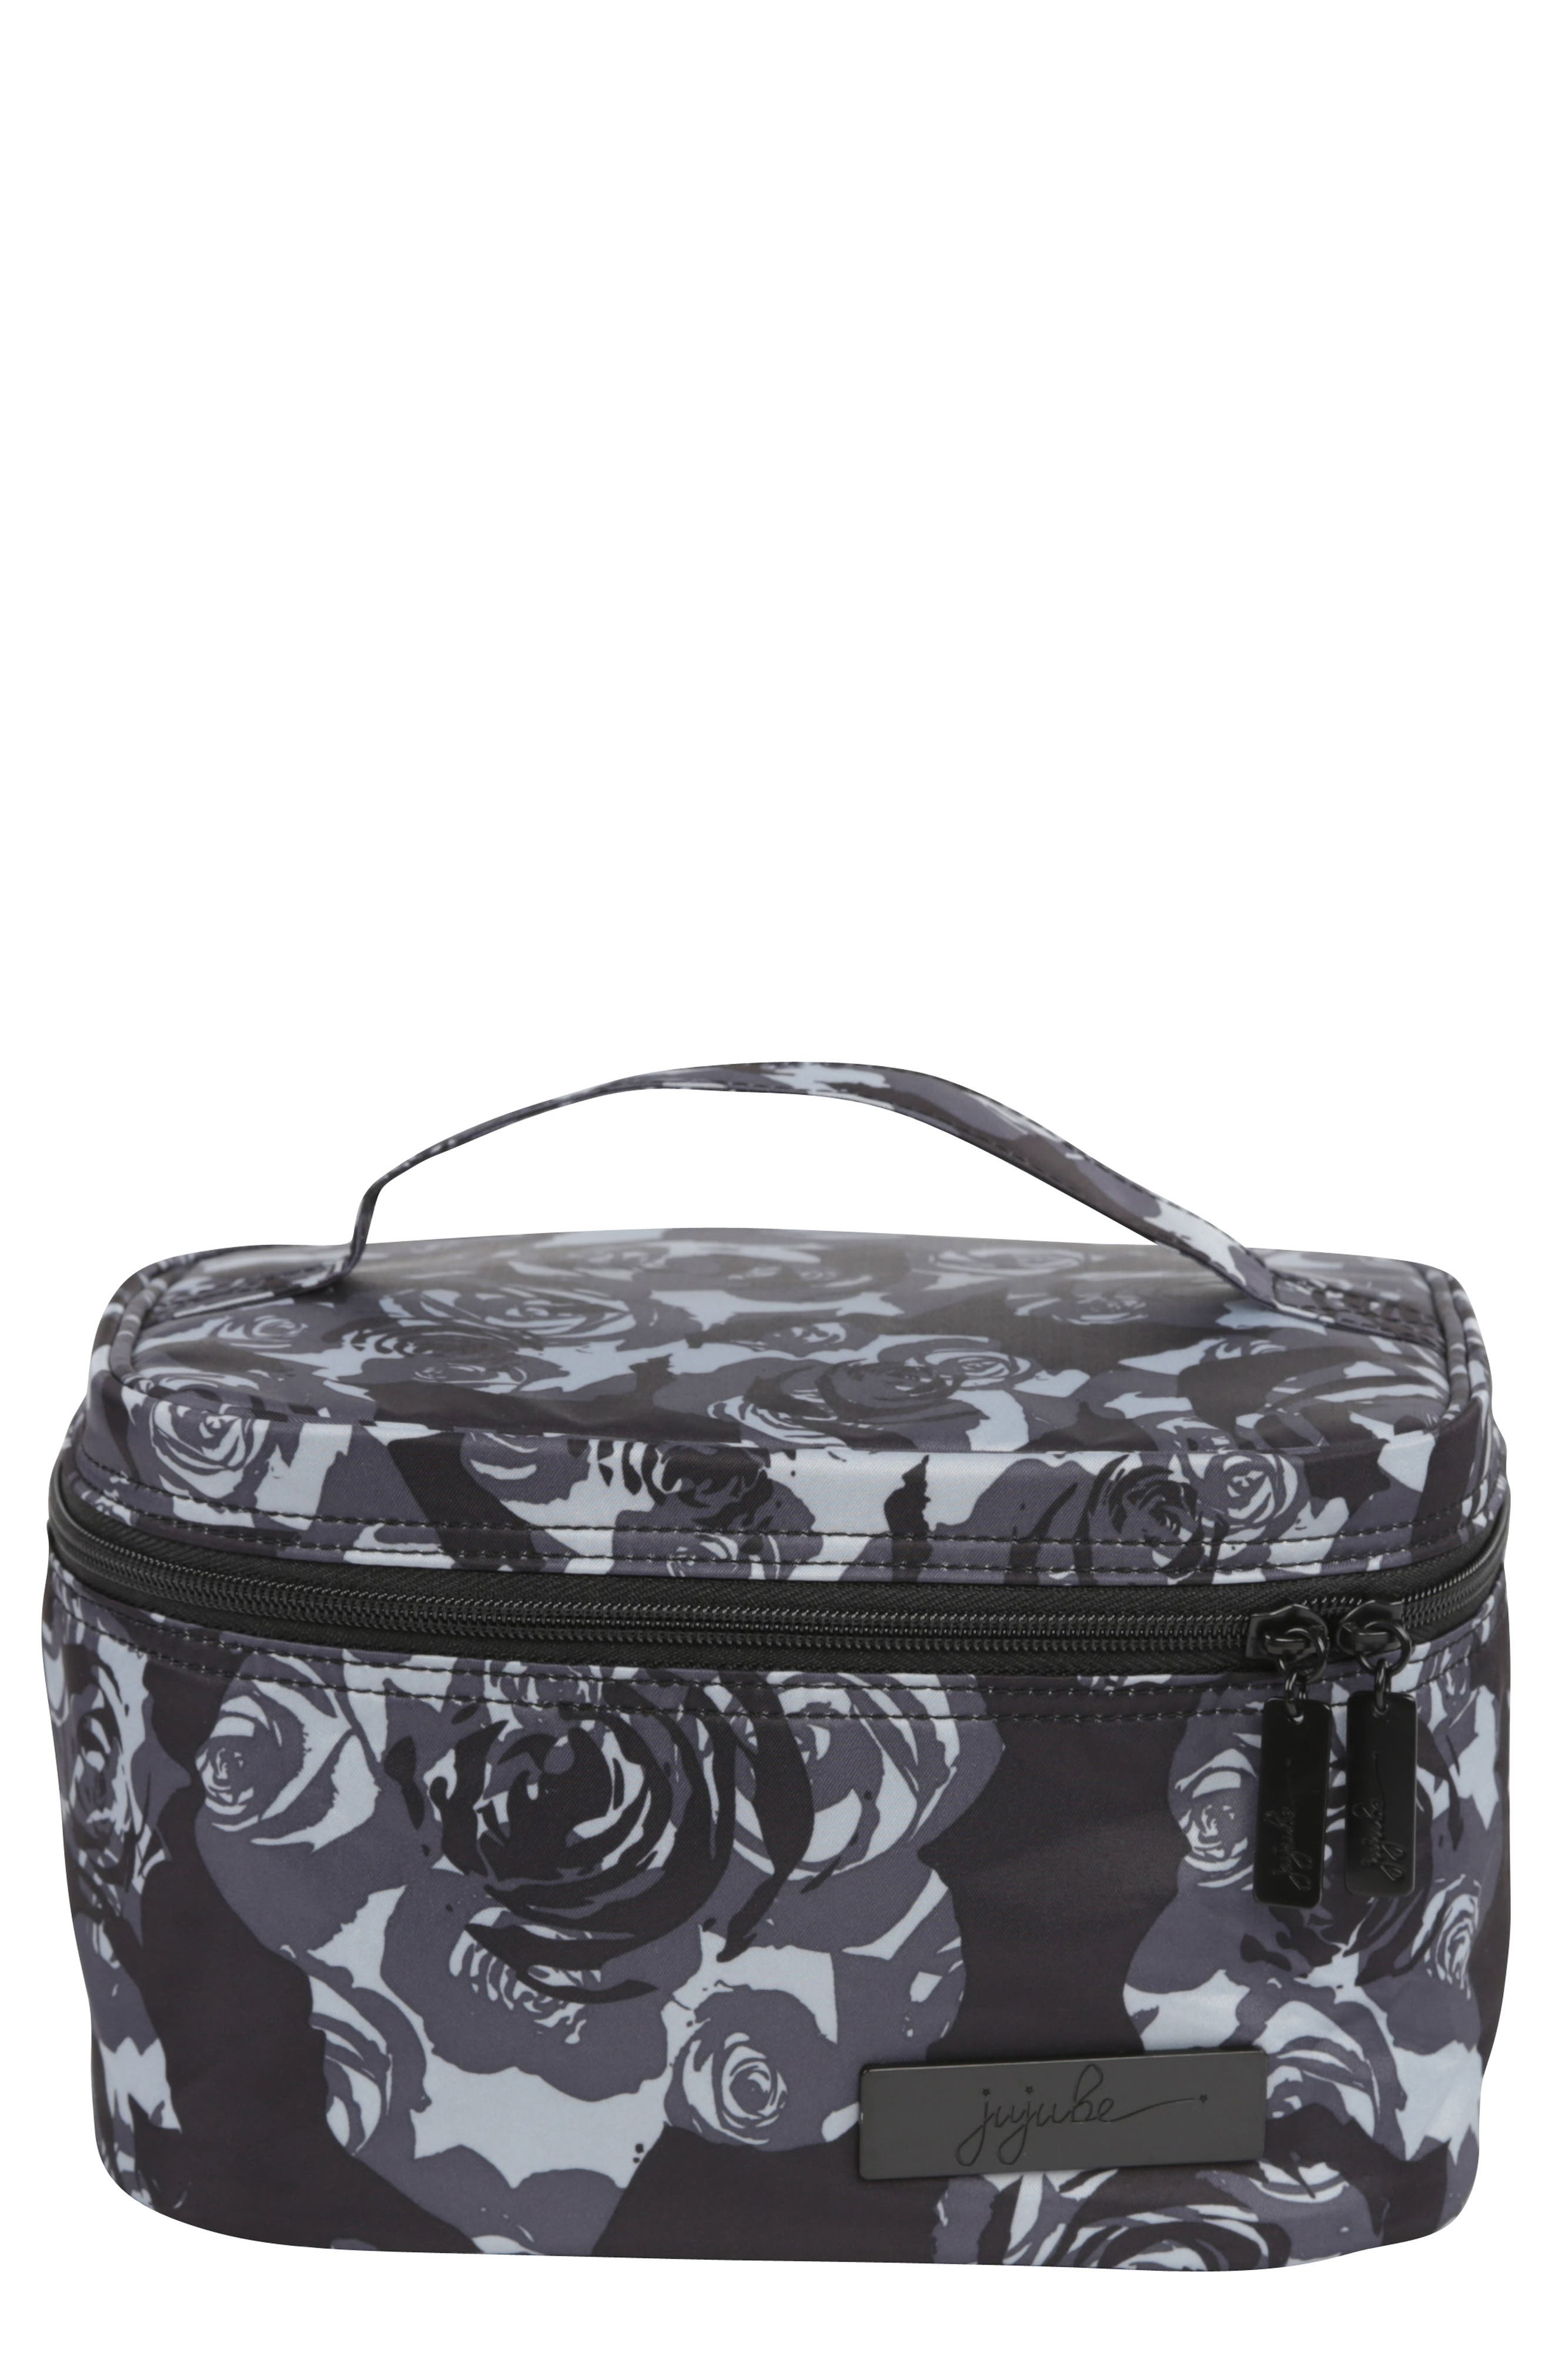 Alternate Image 1 Selected - Ju-Ju-Be Legacy Be Ready Cosmetics Travel Case